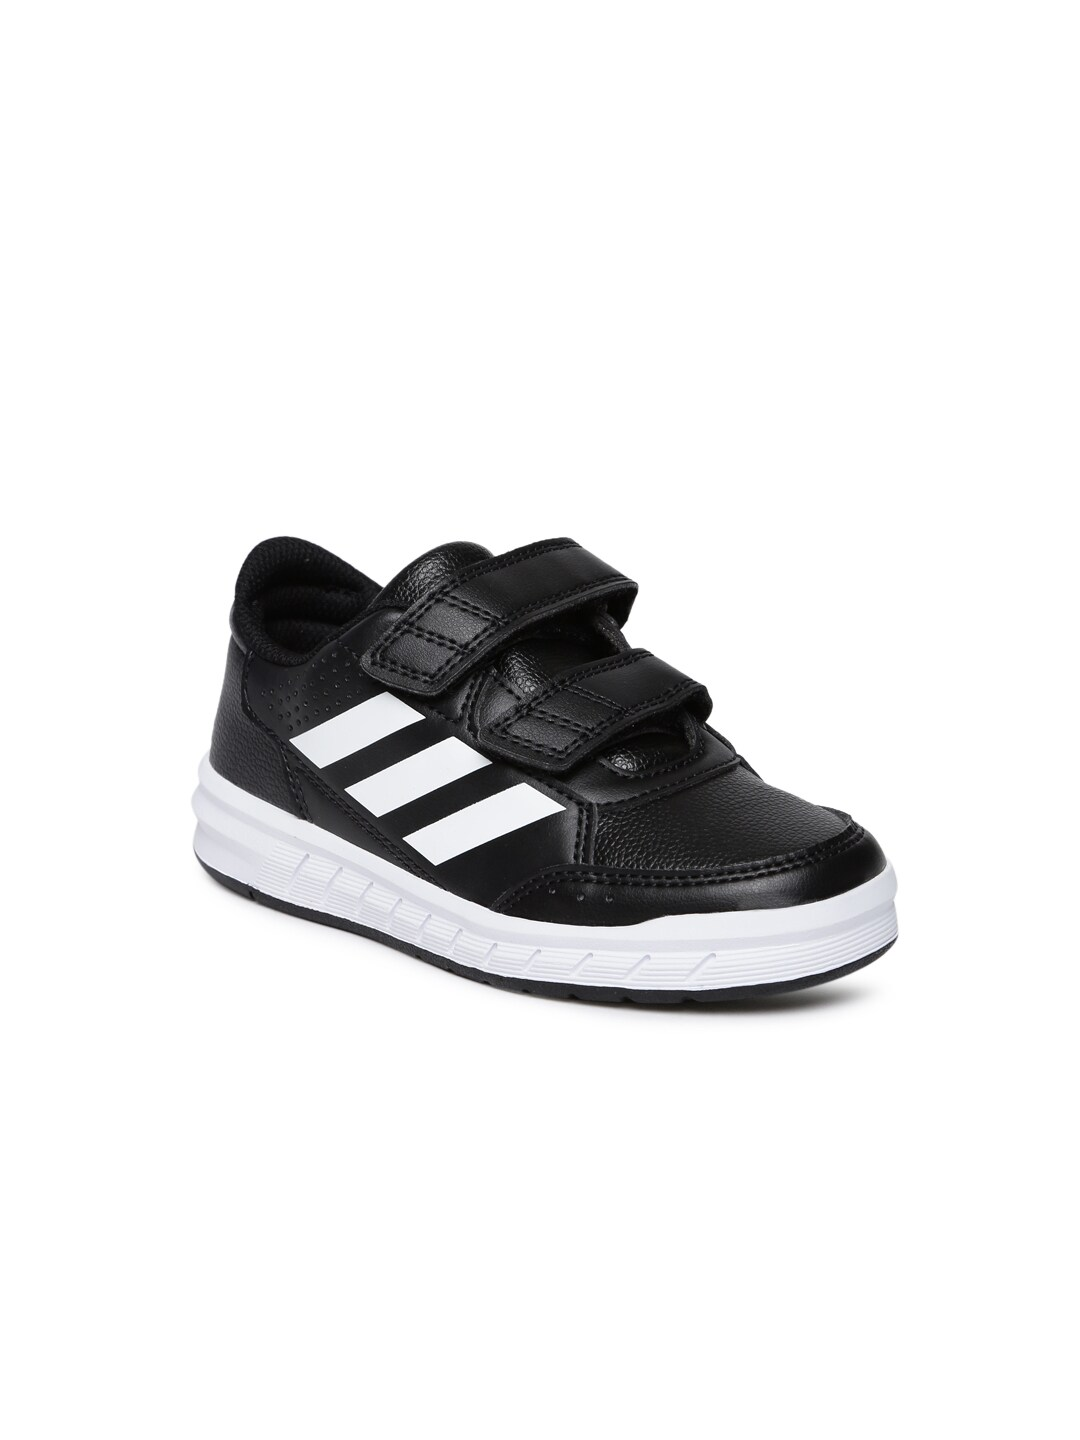 separation shoes 13cec 464e7 Adidas Velcro Shoes - Buy Adidas Velcro Shoes online in Indi